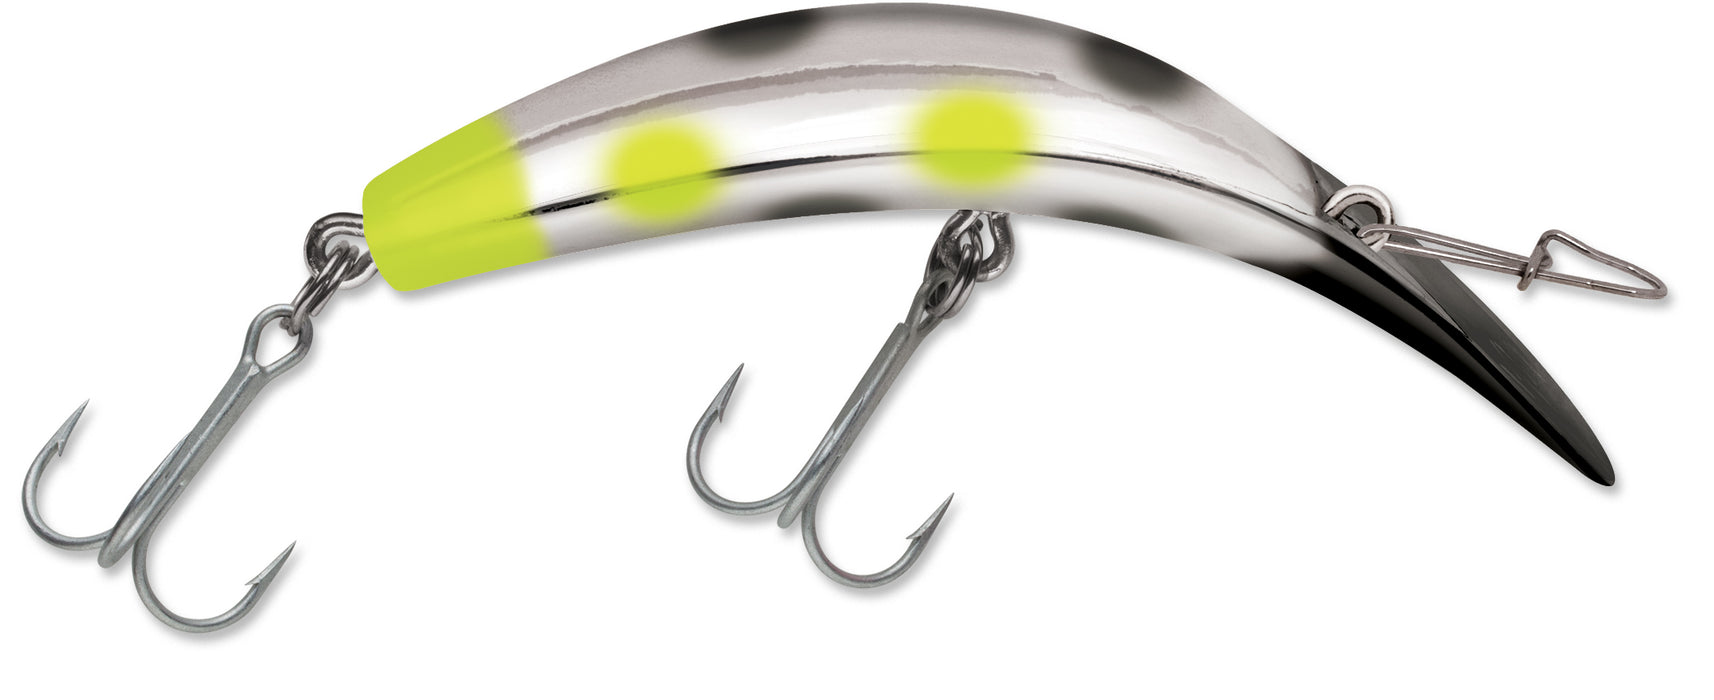 Luhr-Jensen Rattling Kwikfish X-Treme K15X Diving Plug